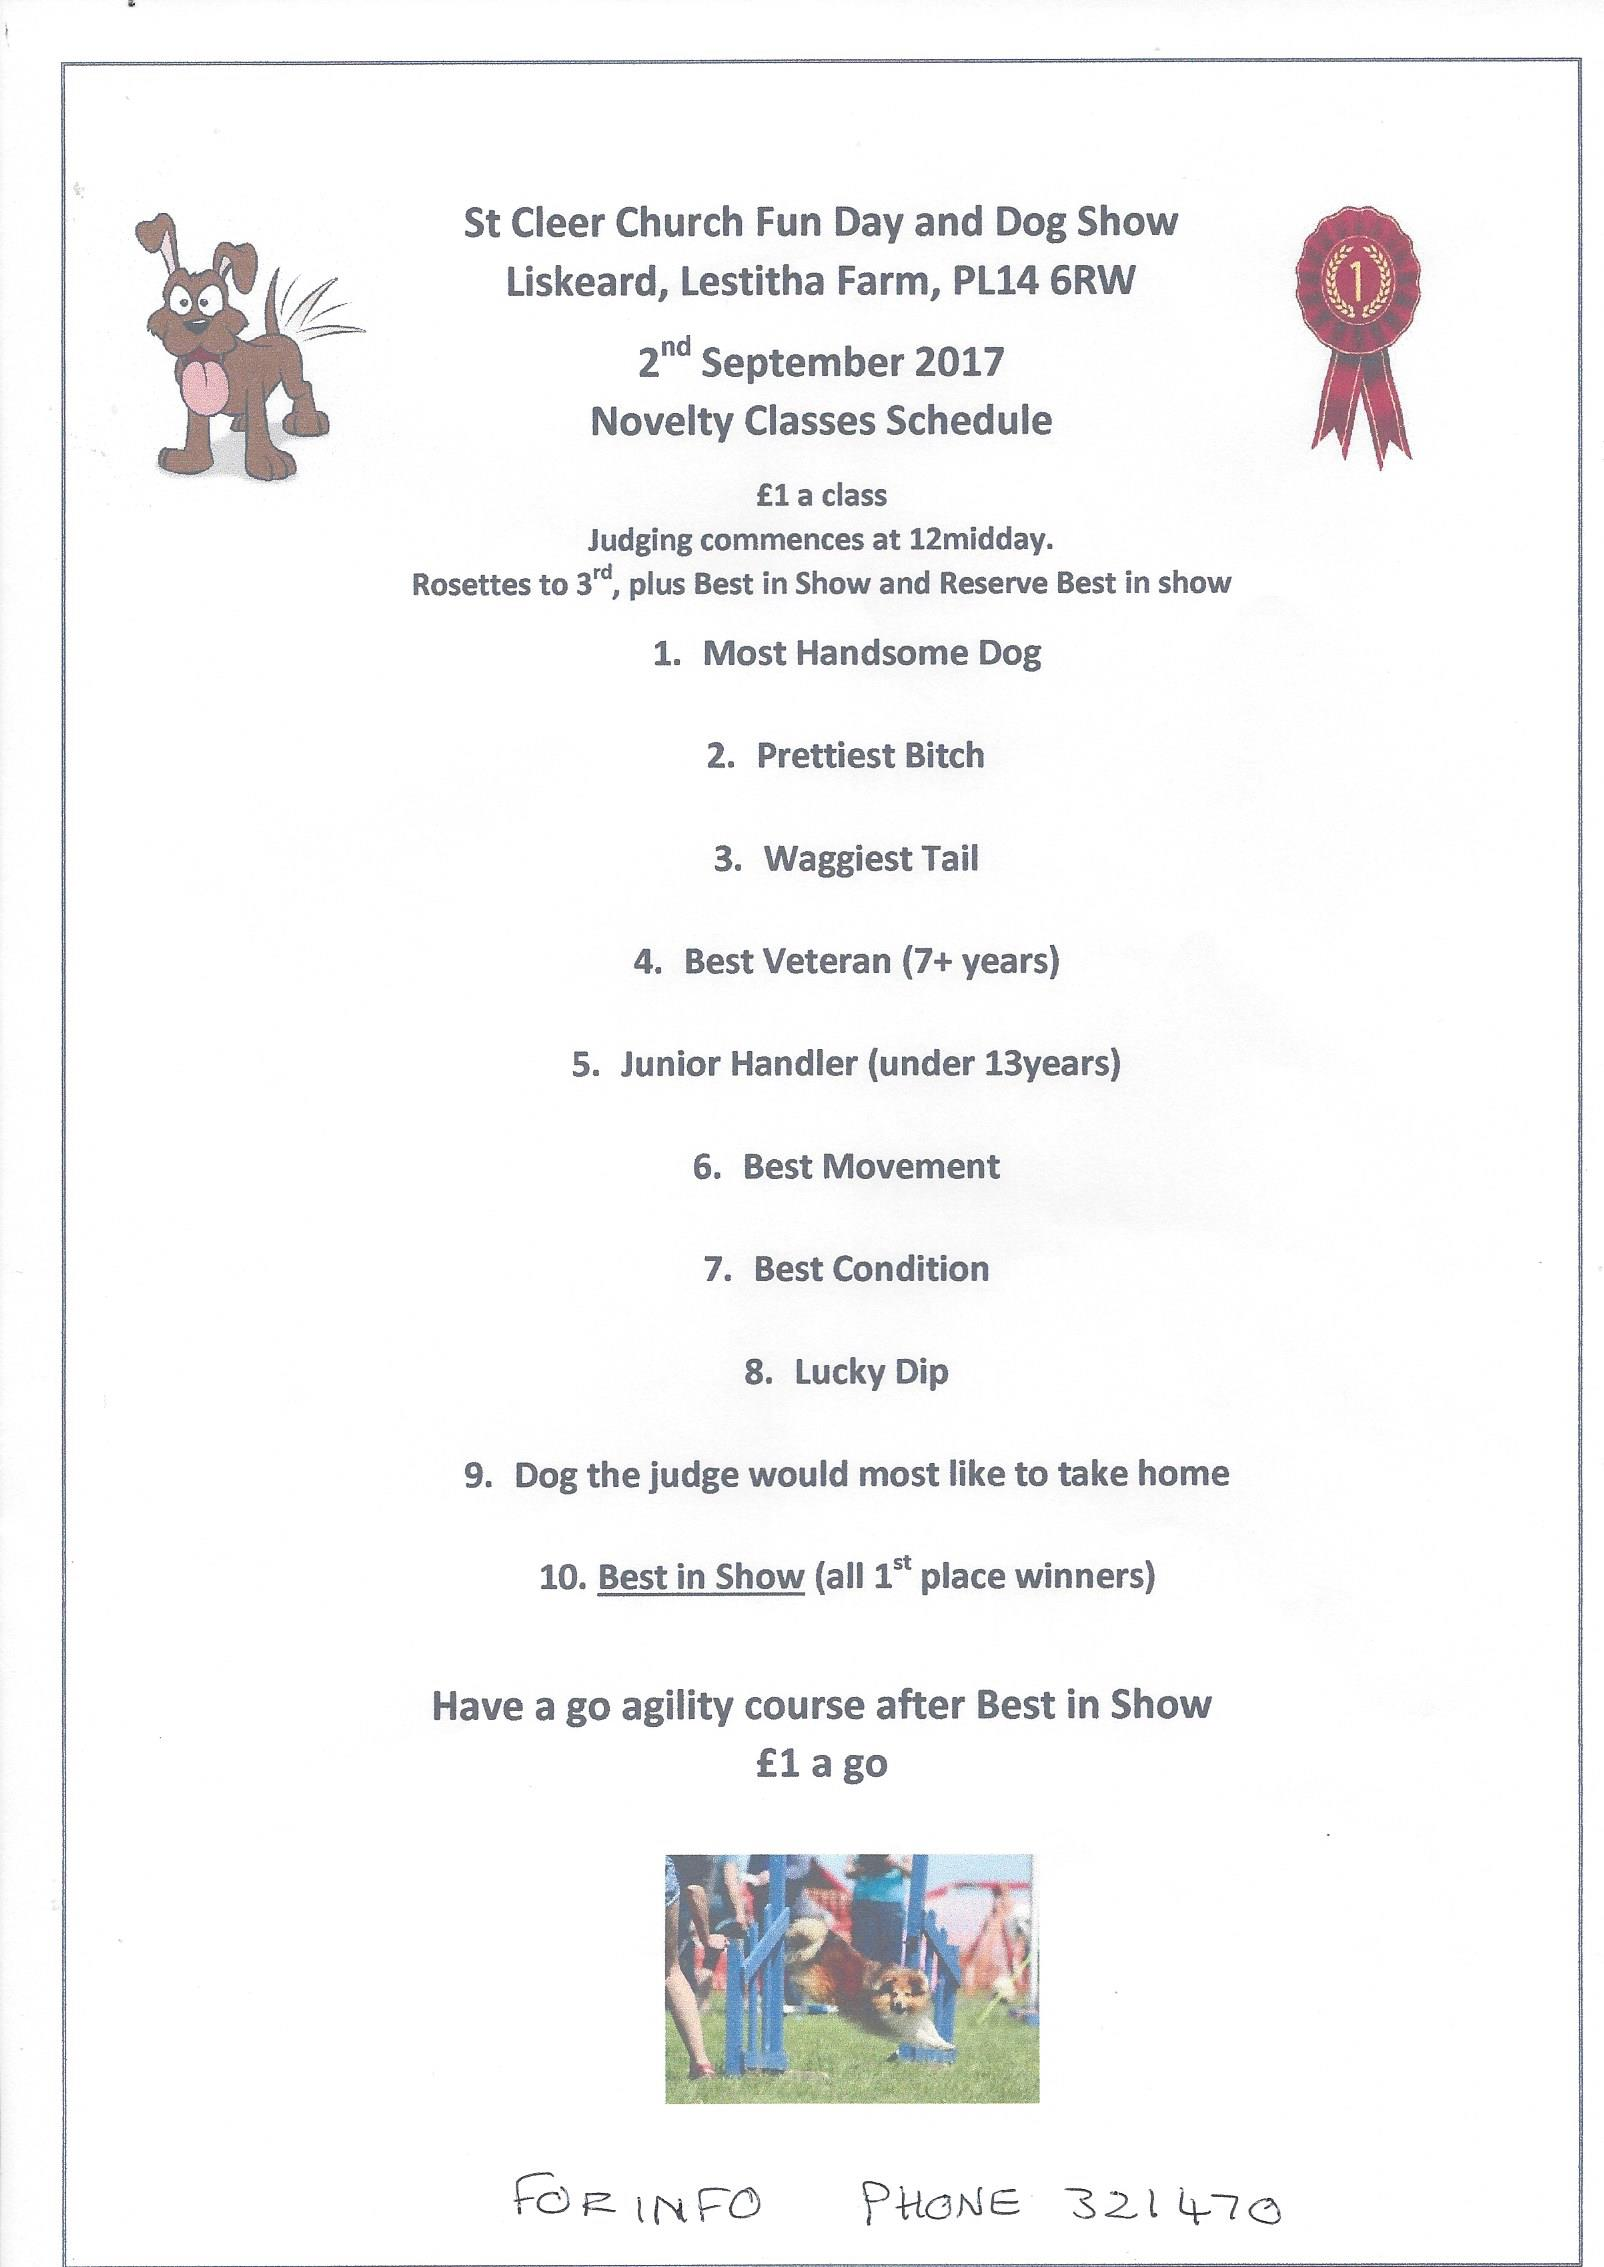 St Cleer Fun Day and Dog Show Classes